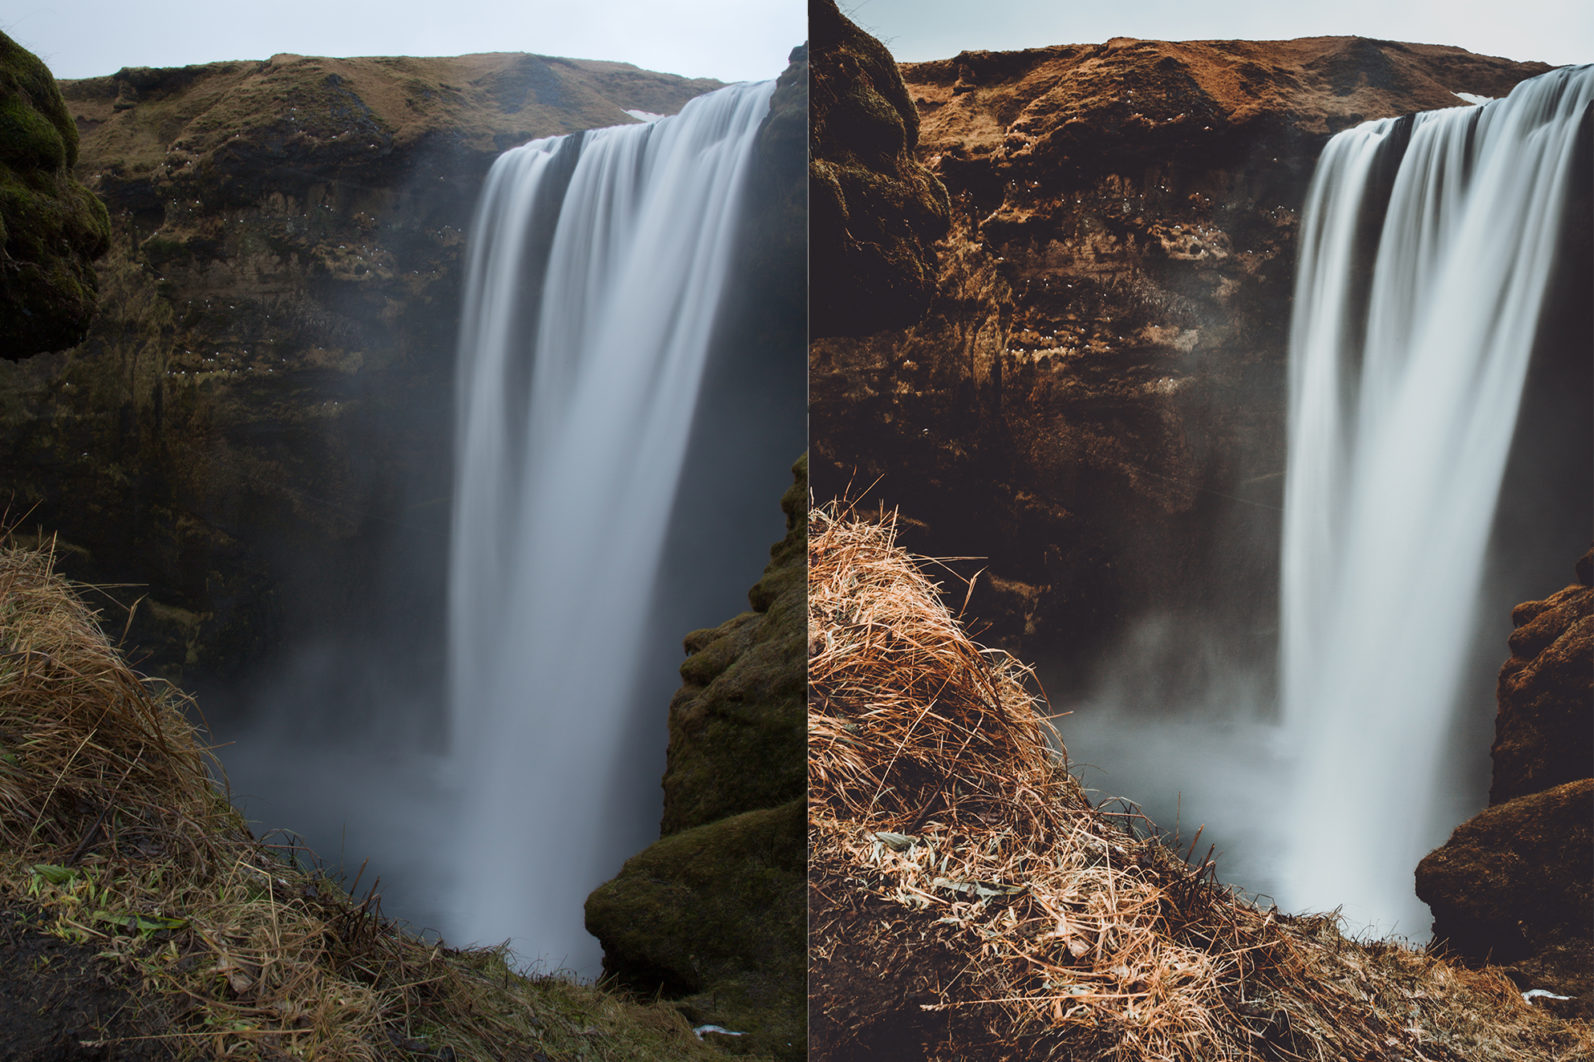 BUNDLE /// 03_Travel Collection // 97 x Desktop and Mobile Presets - Iceland Preview 11 -